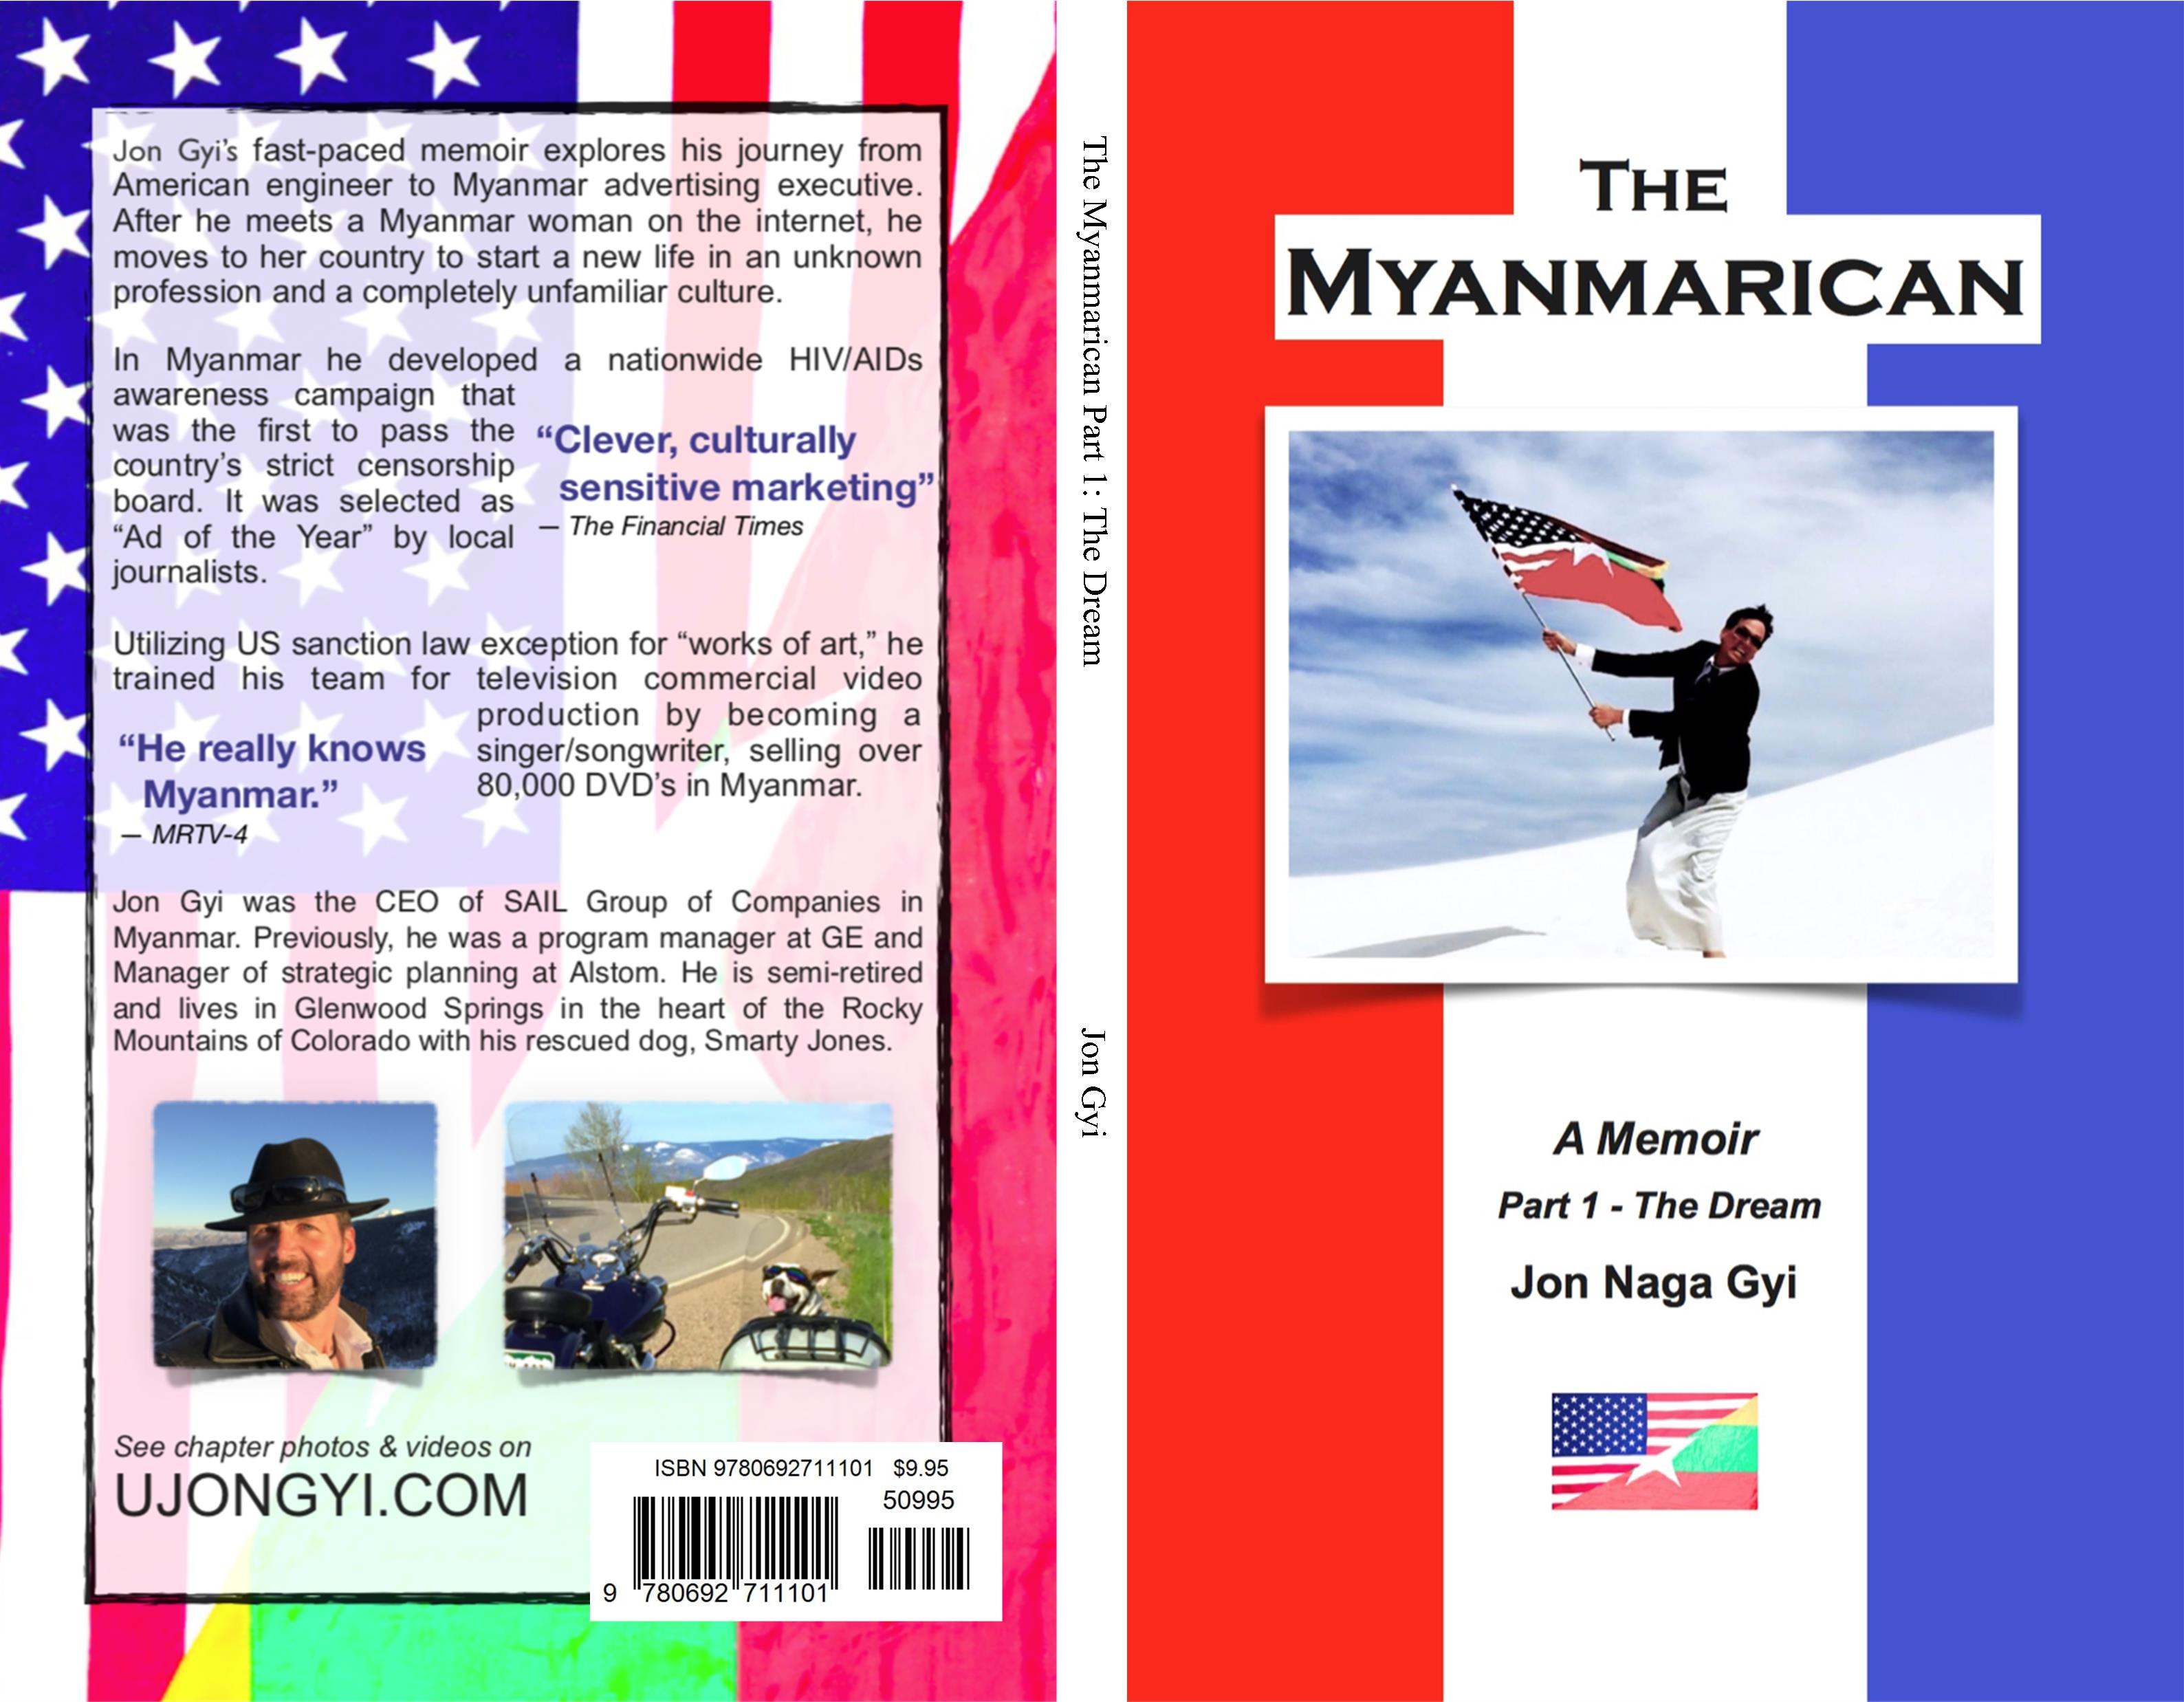 The Myanmarican Part 1: The Dream cover image